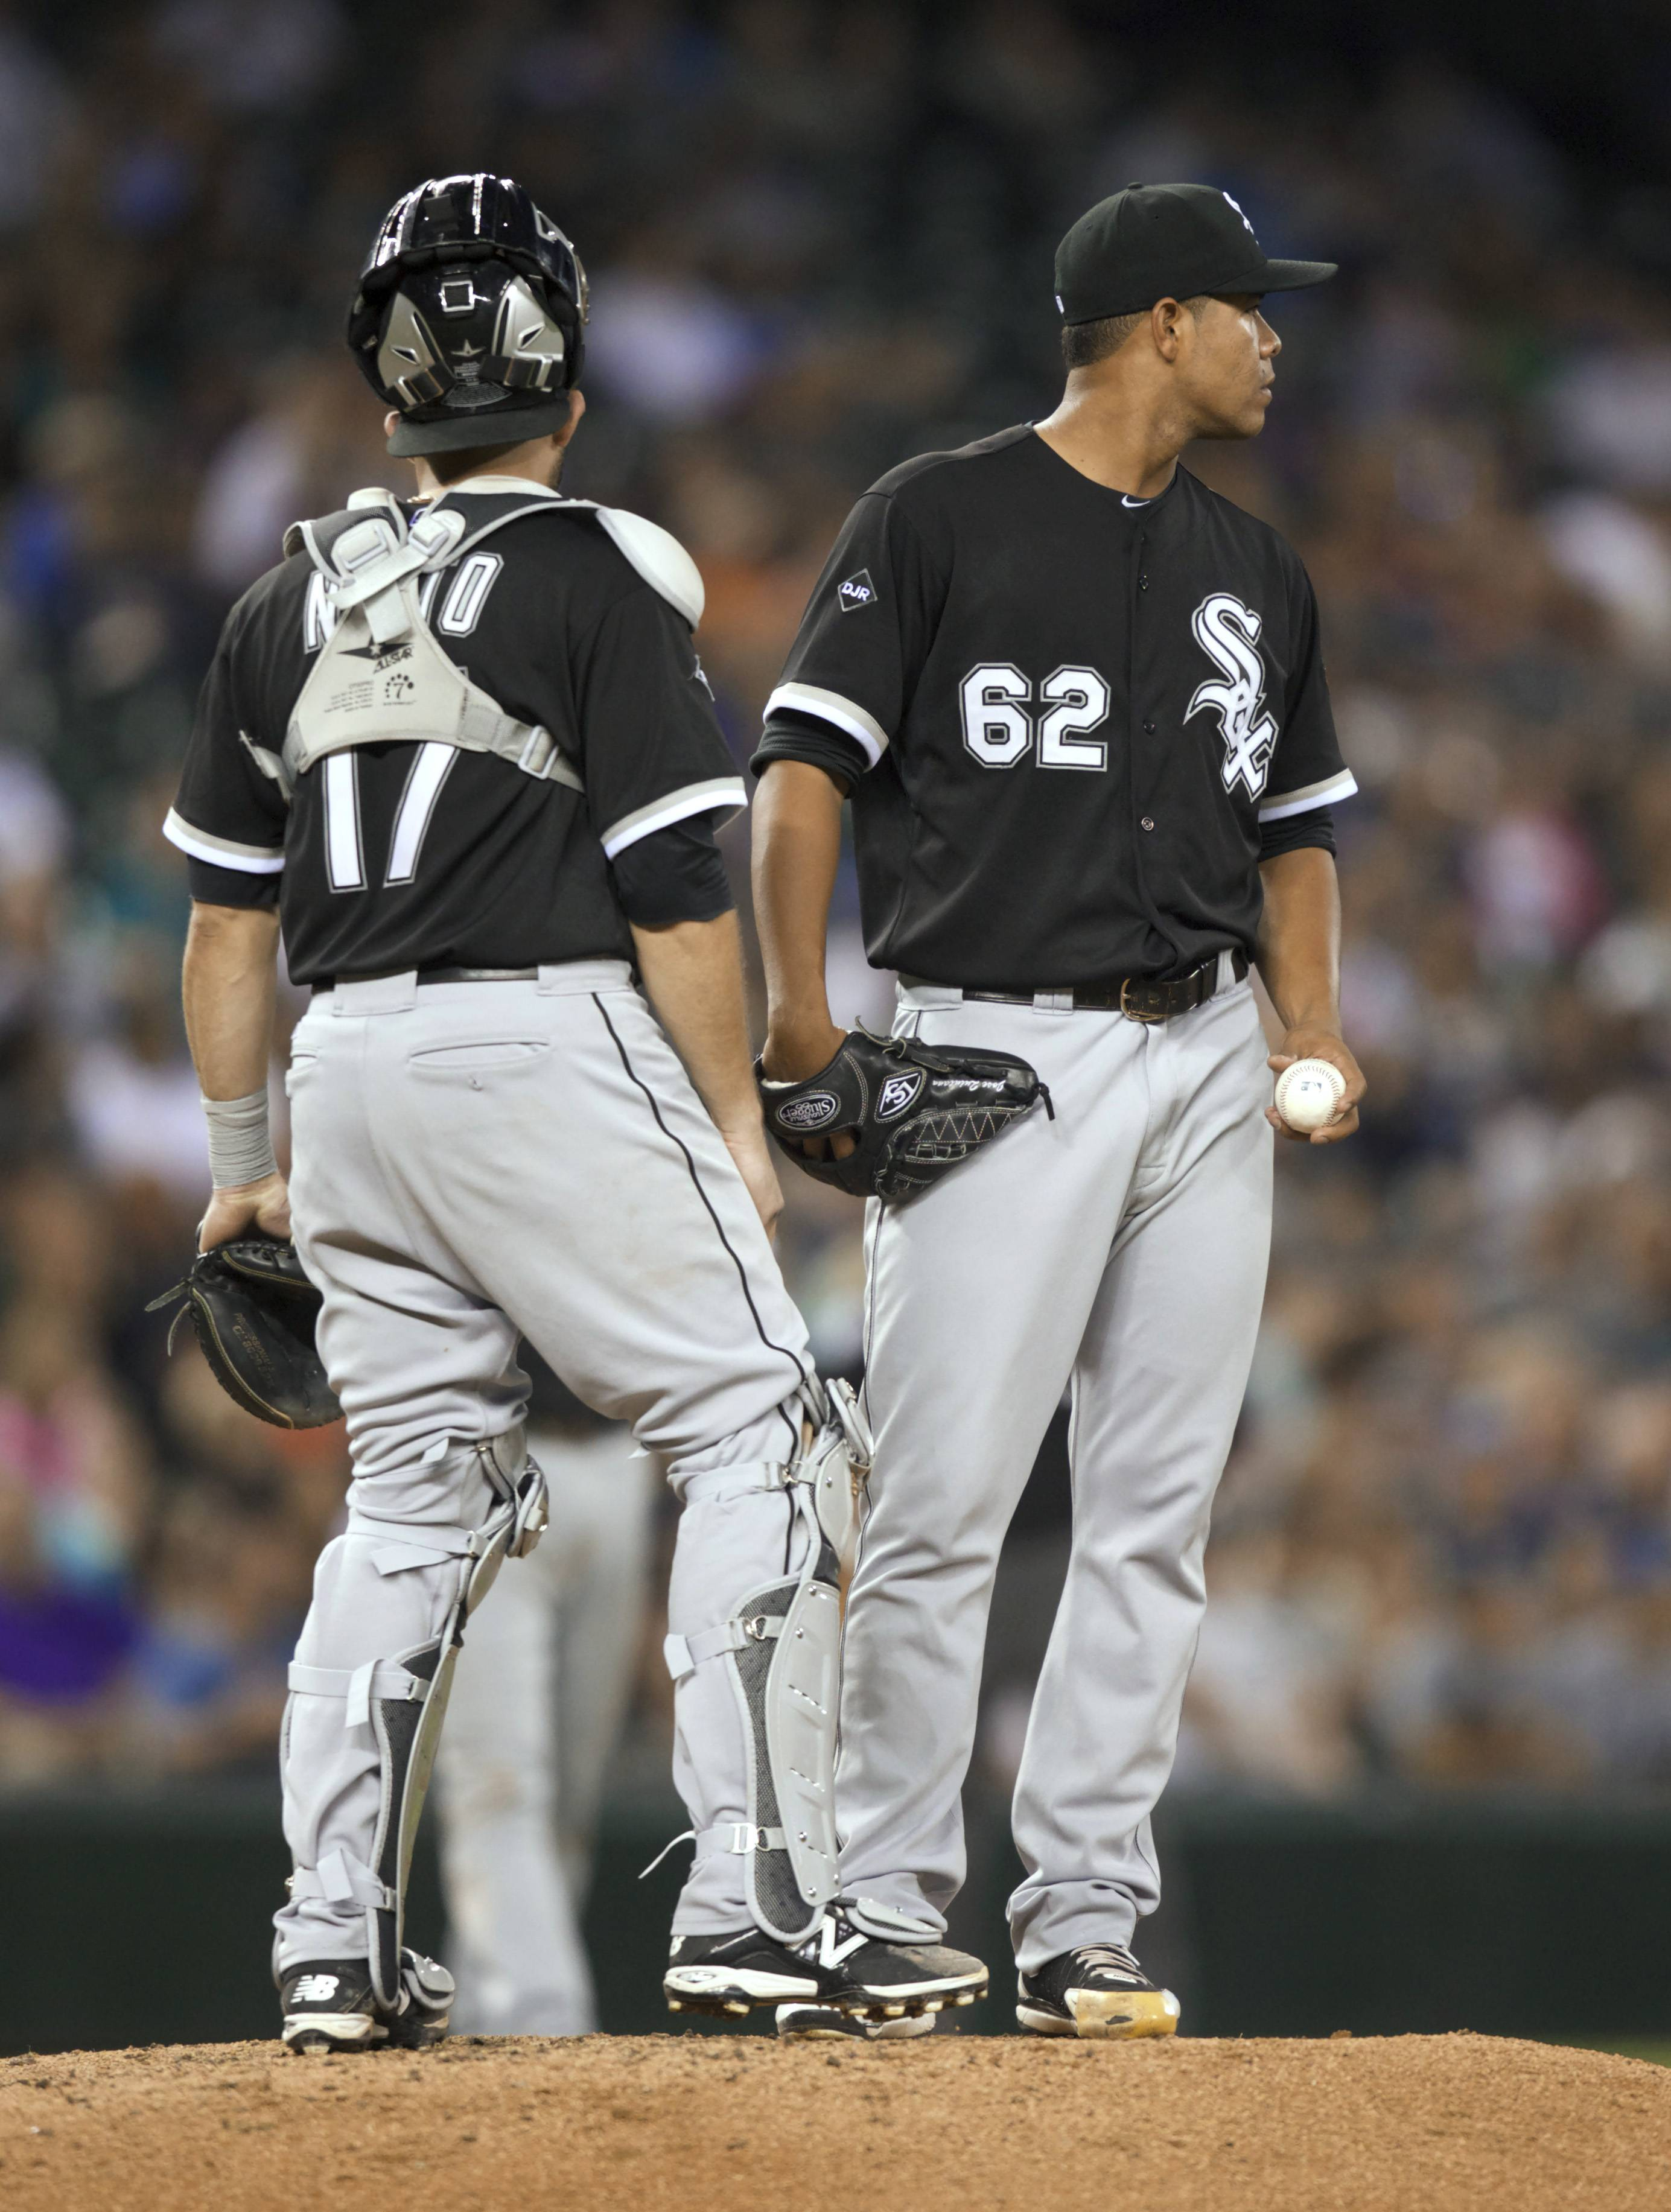 Chicago White Sox starter Jose Quintana (62) meets at the mound with catcher Adrian Nieto before Quitana was replaced during the sixth inning of a baseball game against the Seattle Mariners, Friday, Aug. 8, 2014, in Seattle. (AP Photo/Stephen Brashear)